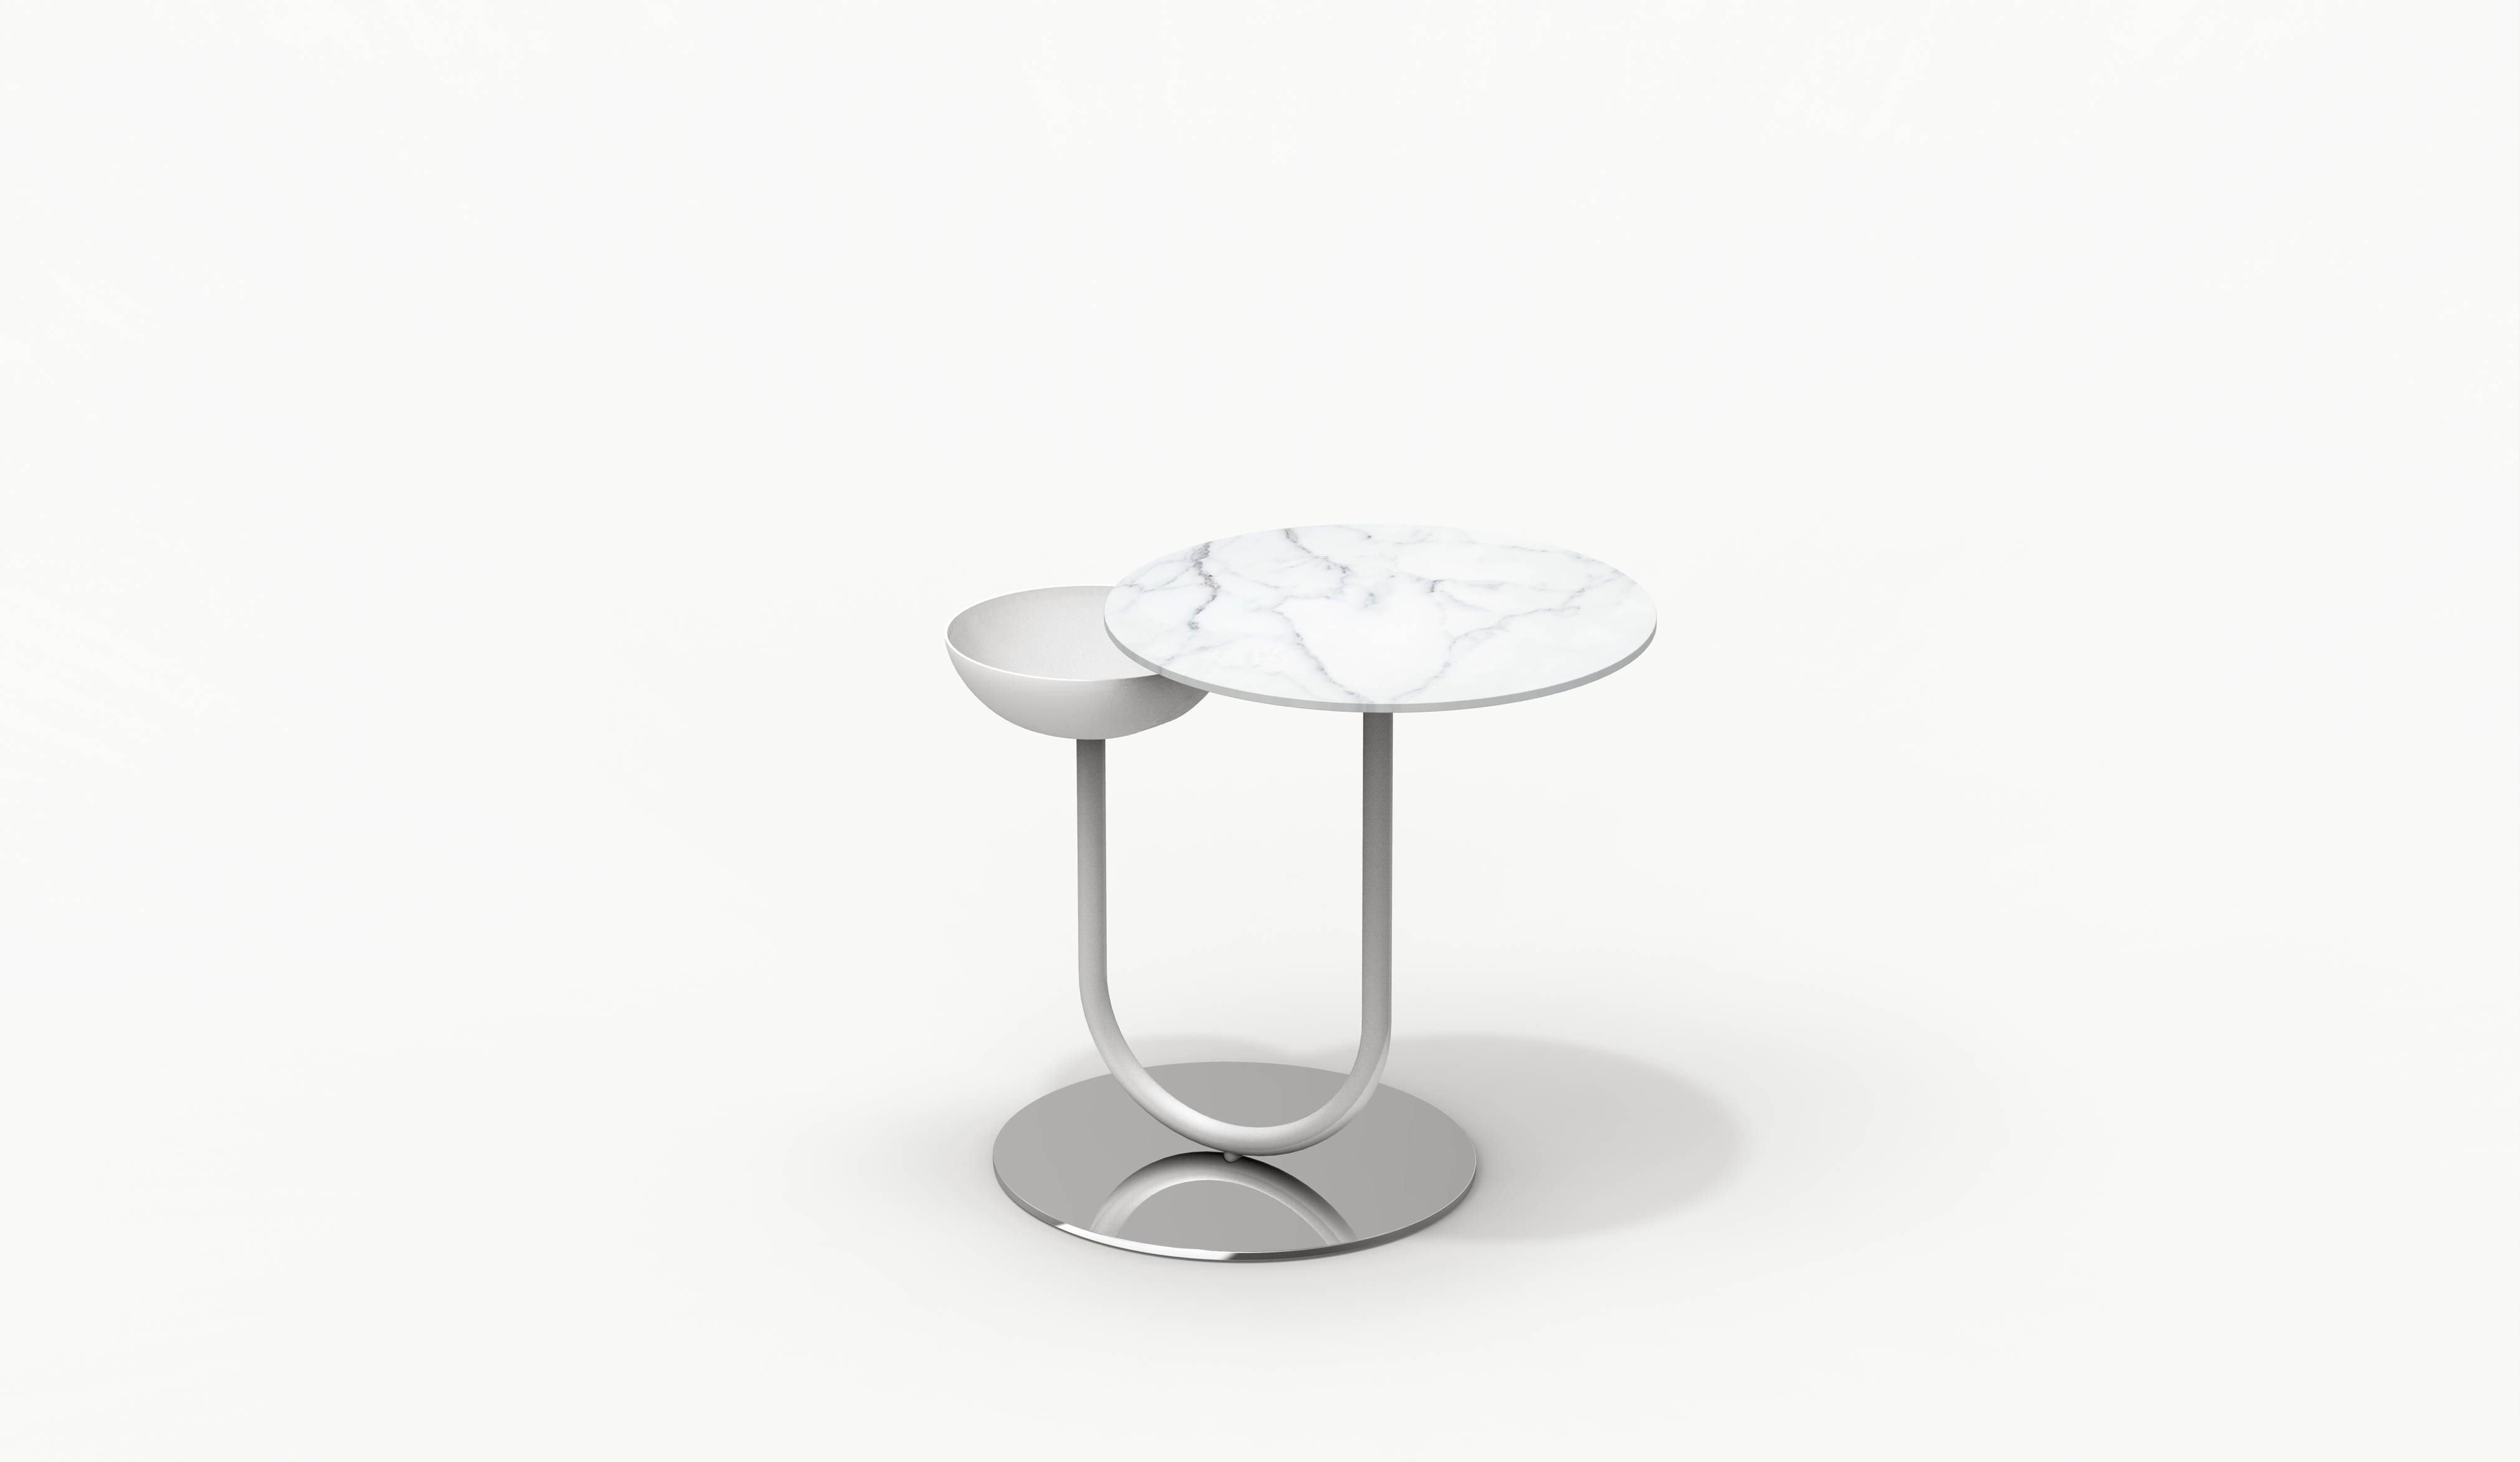 Escal Side Table White Version Farell Contemporary Design Objects With Character